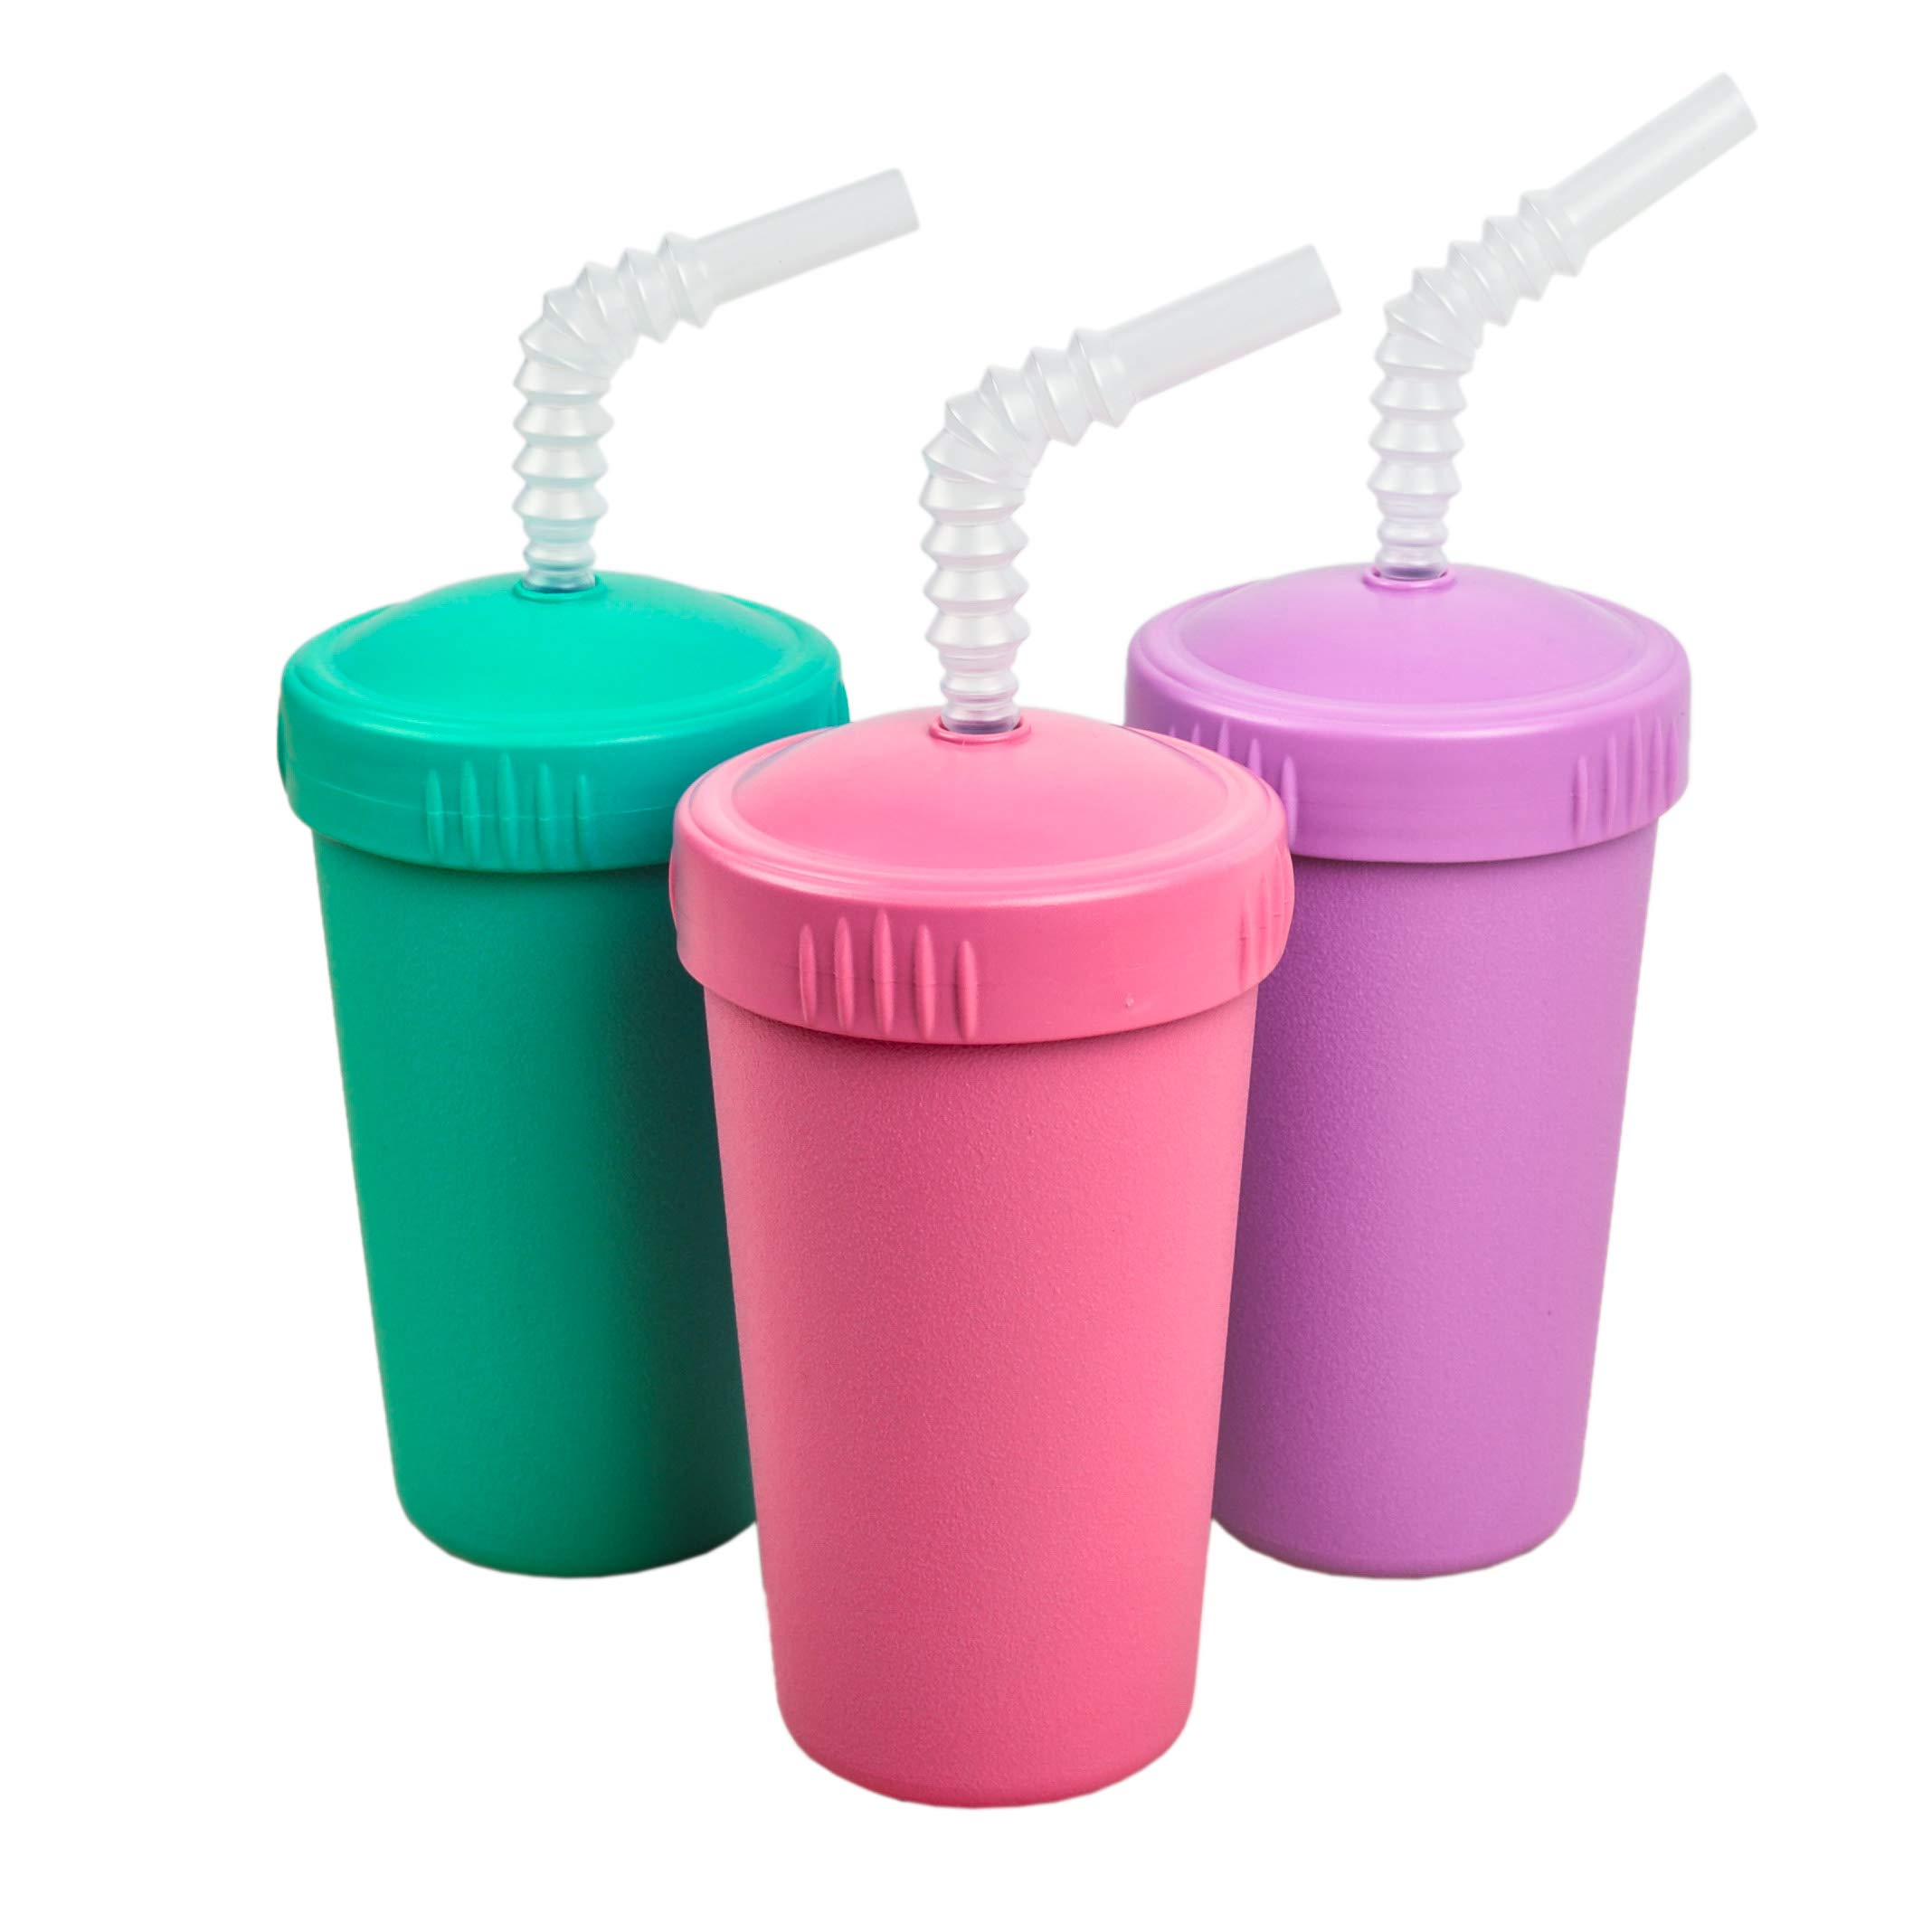 Re-Play Made in USA 3pk Straw Cups with Reversable Straw for Easy Baby, Toddler, Child Feeding - Aqua, Bright Pink, Purple (Sparkle)